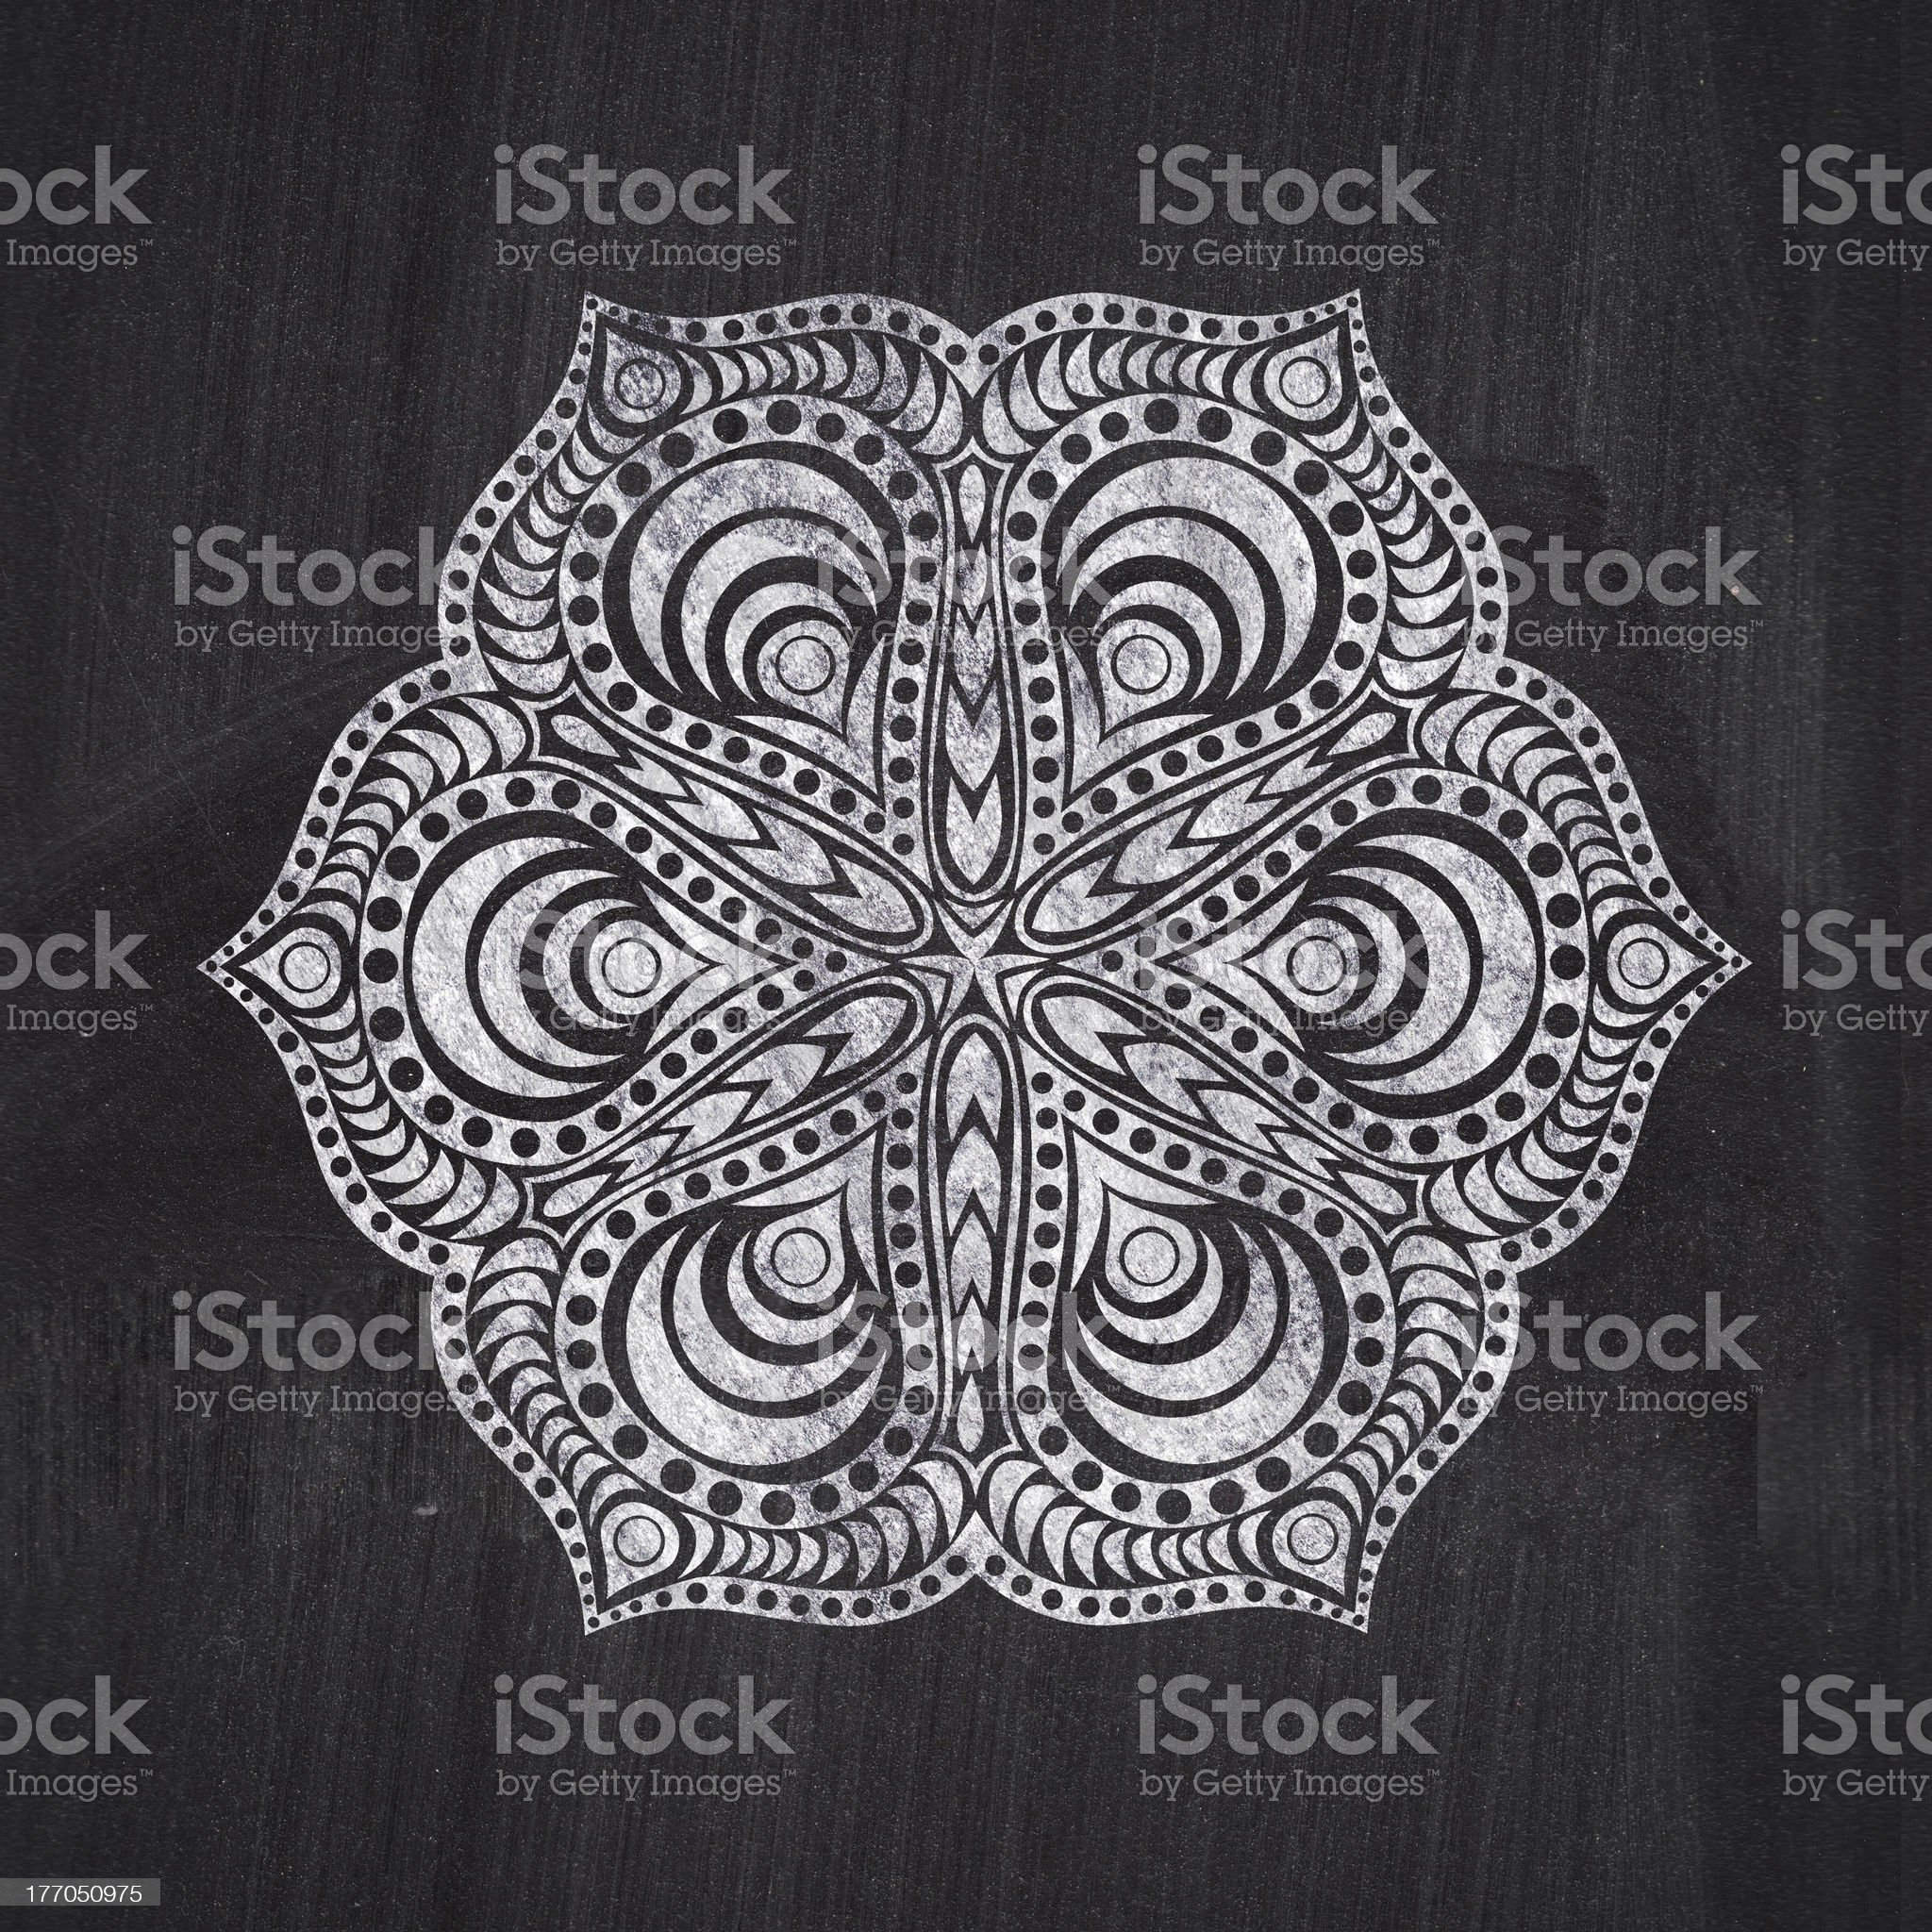 Flower chalk drawing on chalkboard blackboard royalty-free stock vector art